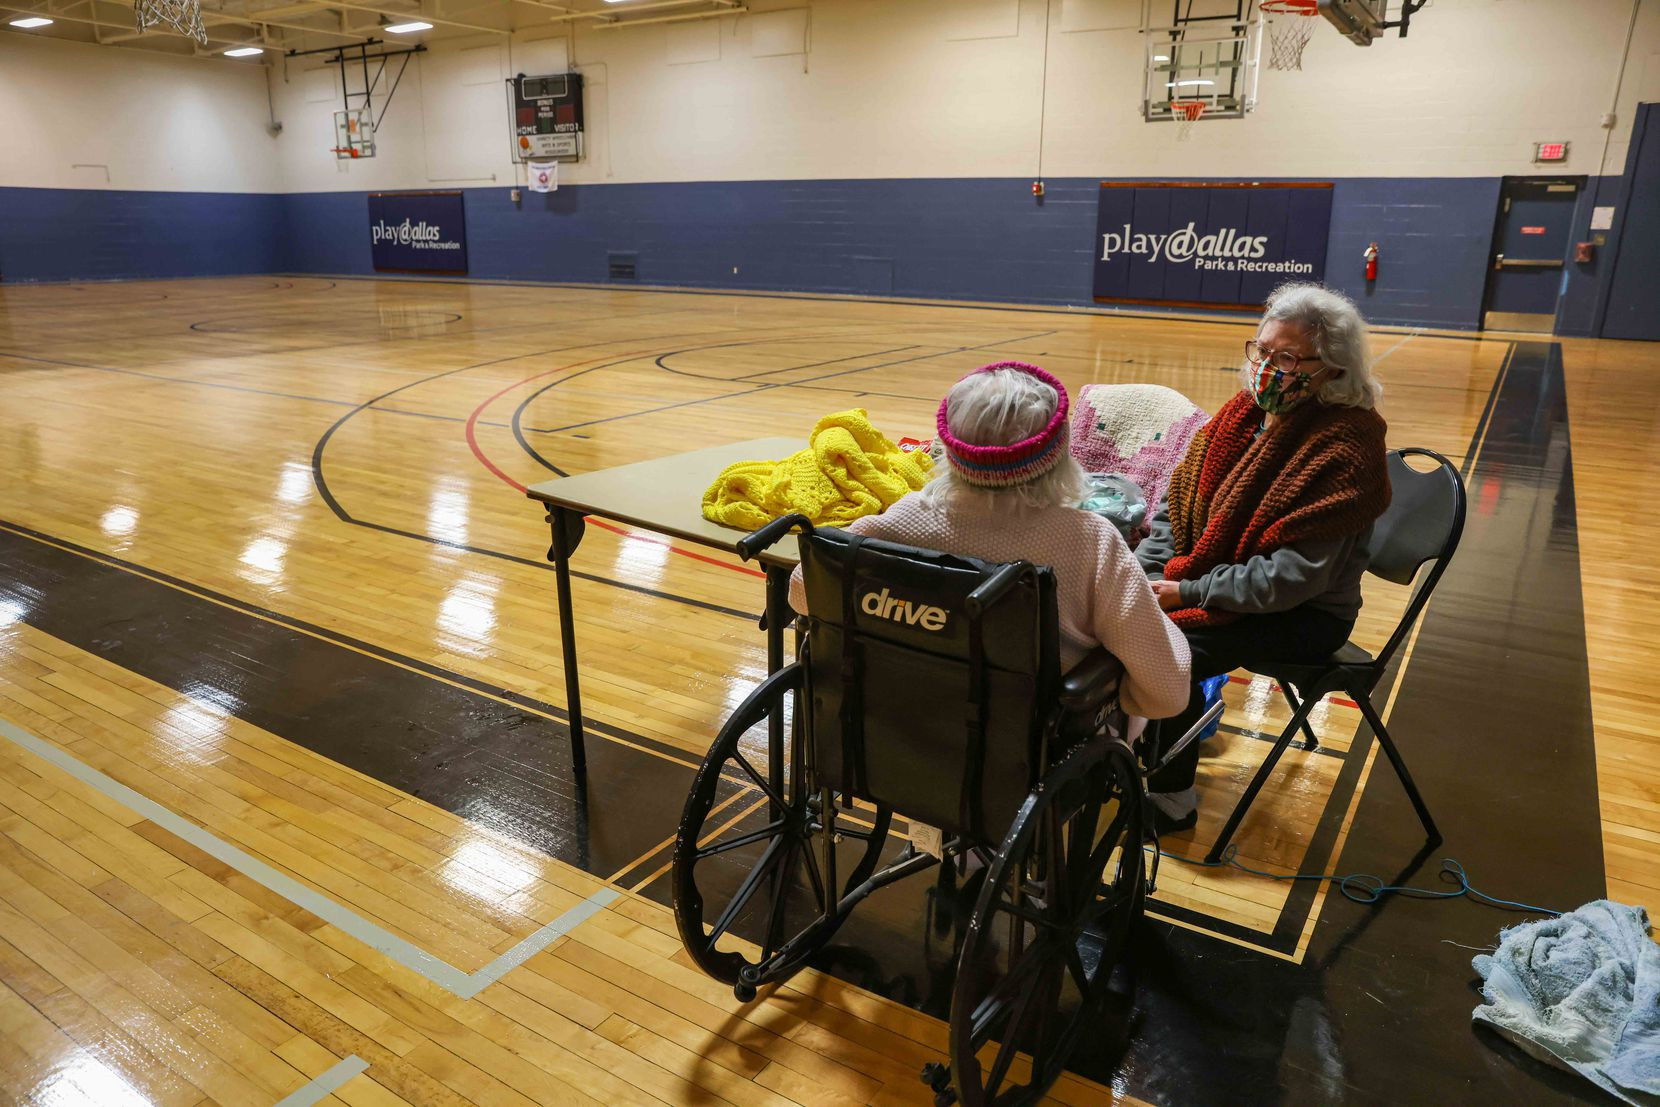 Gloria Sanders, 76, and her mother Maria Barajas, who is 100 years old and has severe dementia, both spend the day at the Pleasant Oaks Recreation Center to warm up in Dallas on Wednesday, February 18, 2021. Sanders and Barajas house has been without power since early Morday after the blizzard hit Texas last Sunday. (Lola Gomez/The Dallas Morning News)